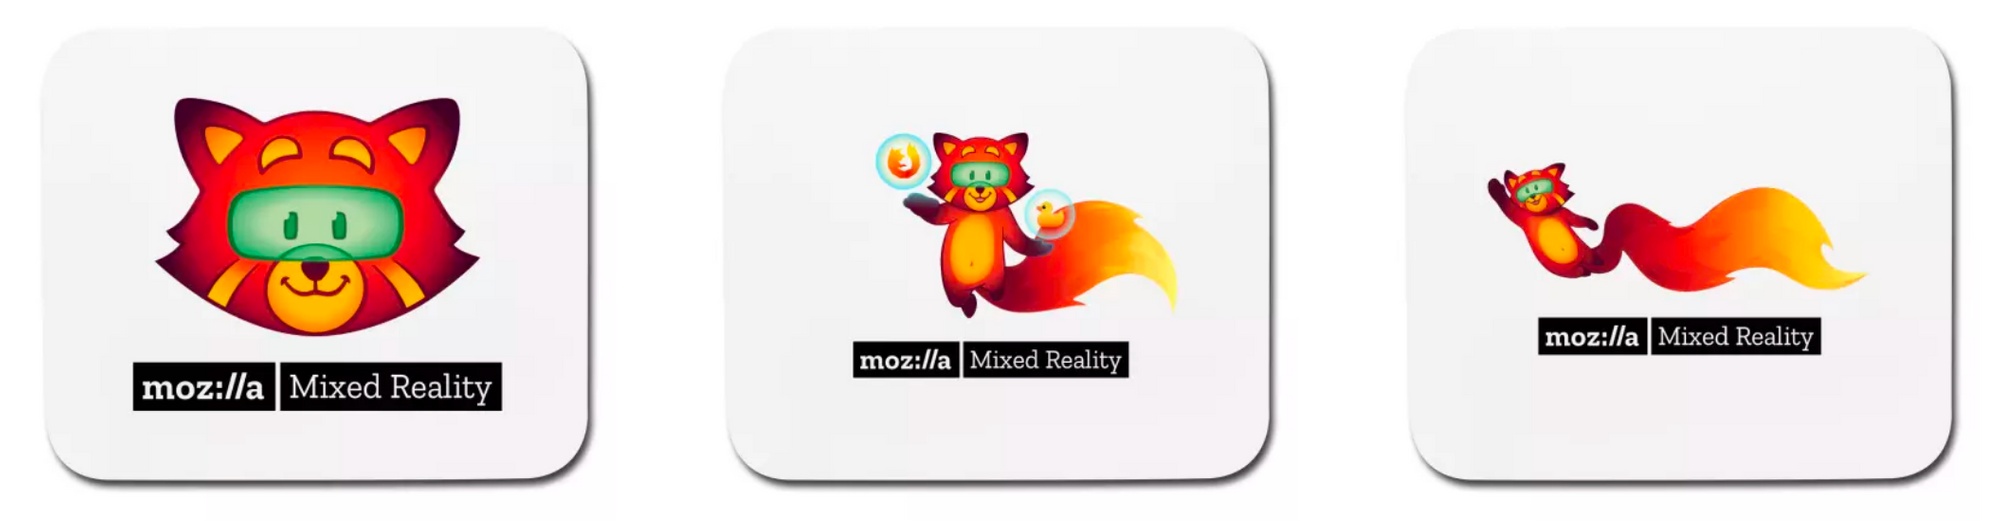 Announcing the Mozilla Mixed Reality Merch Store!